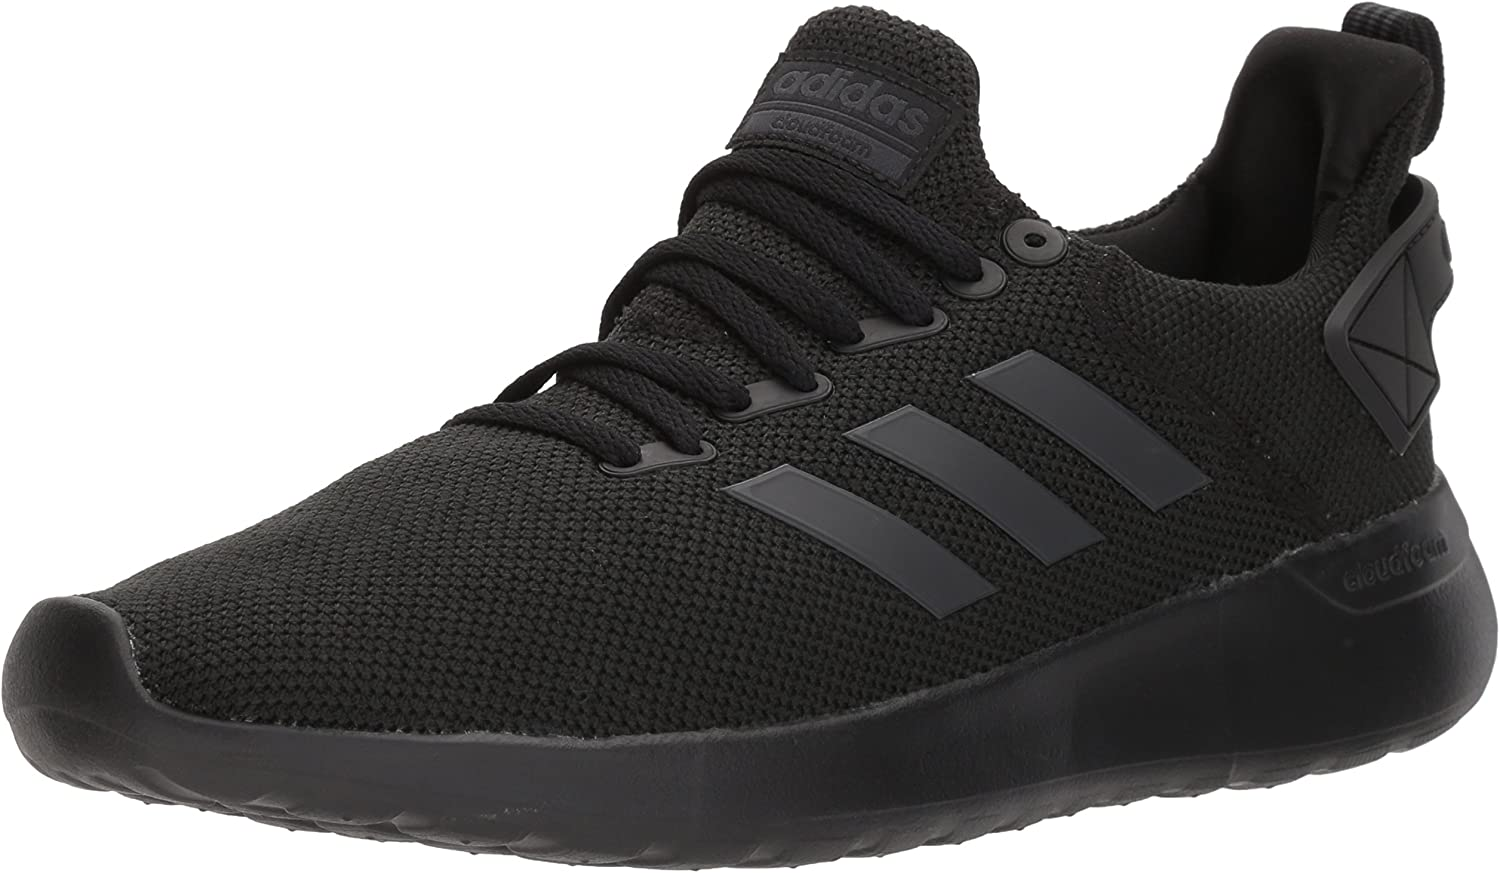 adidas Lite Racer BYD Mens Shoes Black/Carbon ac7828